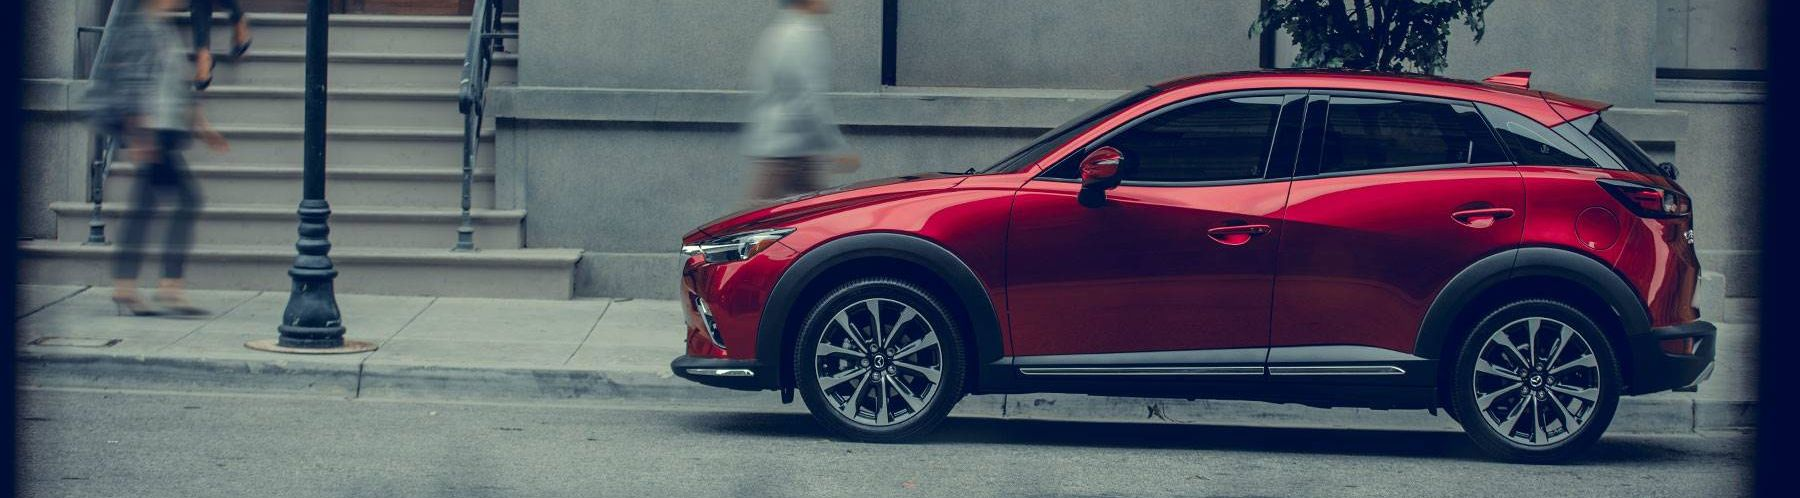 2019 Mazda CX-3 Leasing in New Braunfels, TX